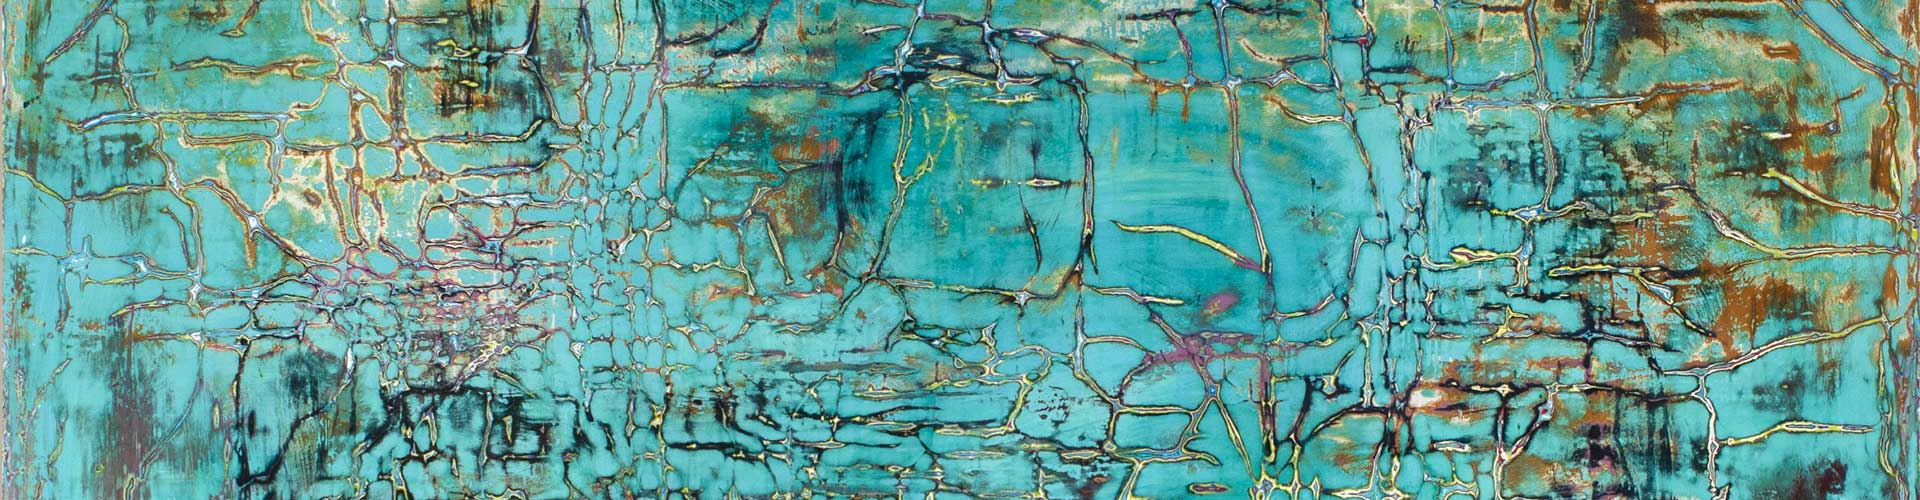 Painting in Turquoise-Azur dream 2020